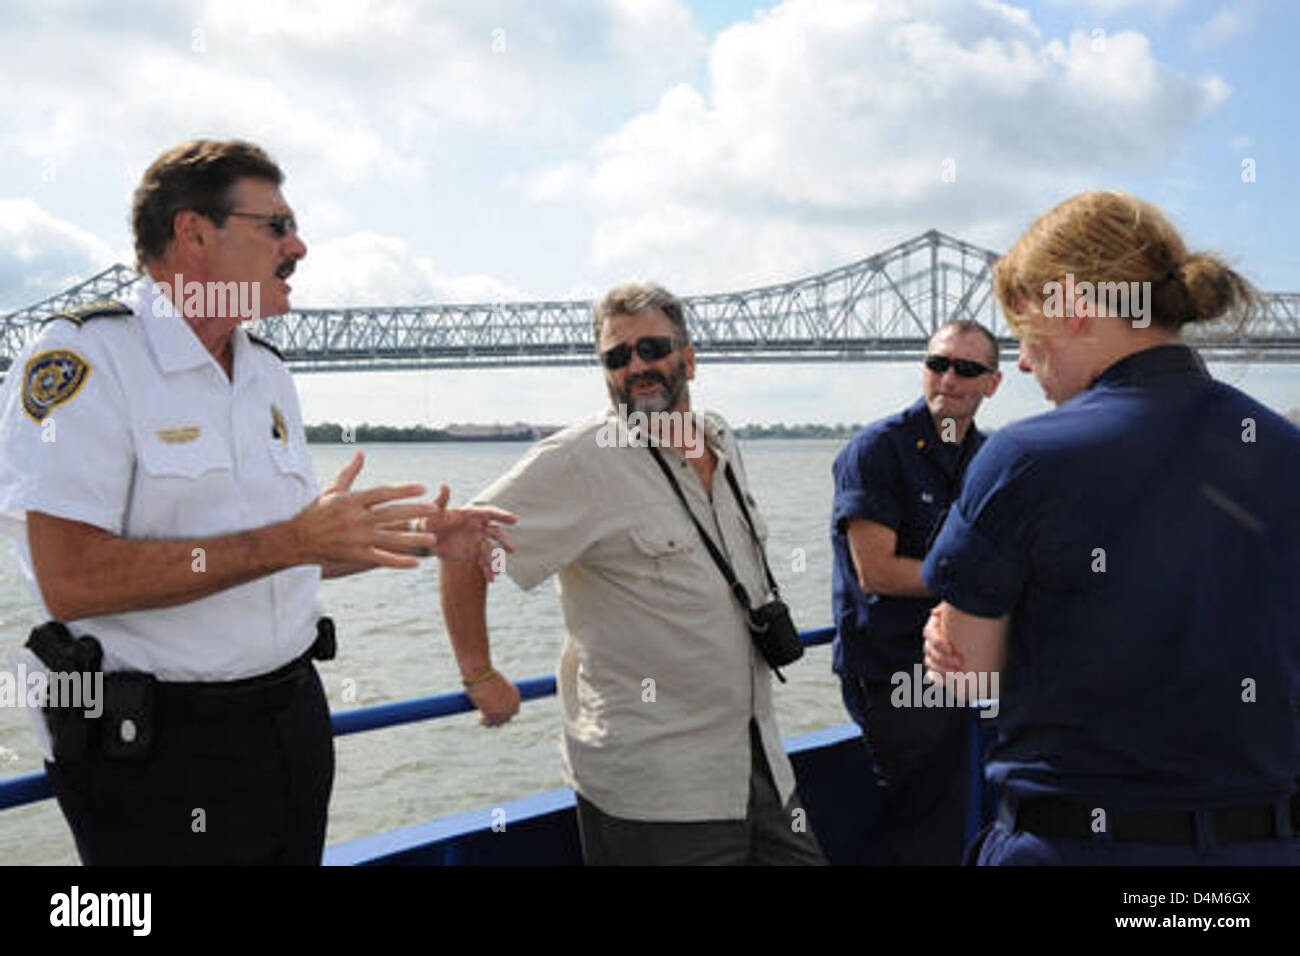 Harbor Police Port of New Orleans escort South African delegates Stock Photo